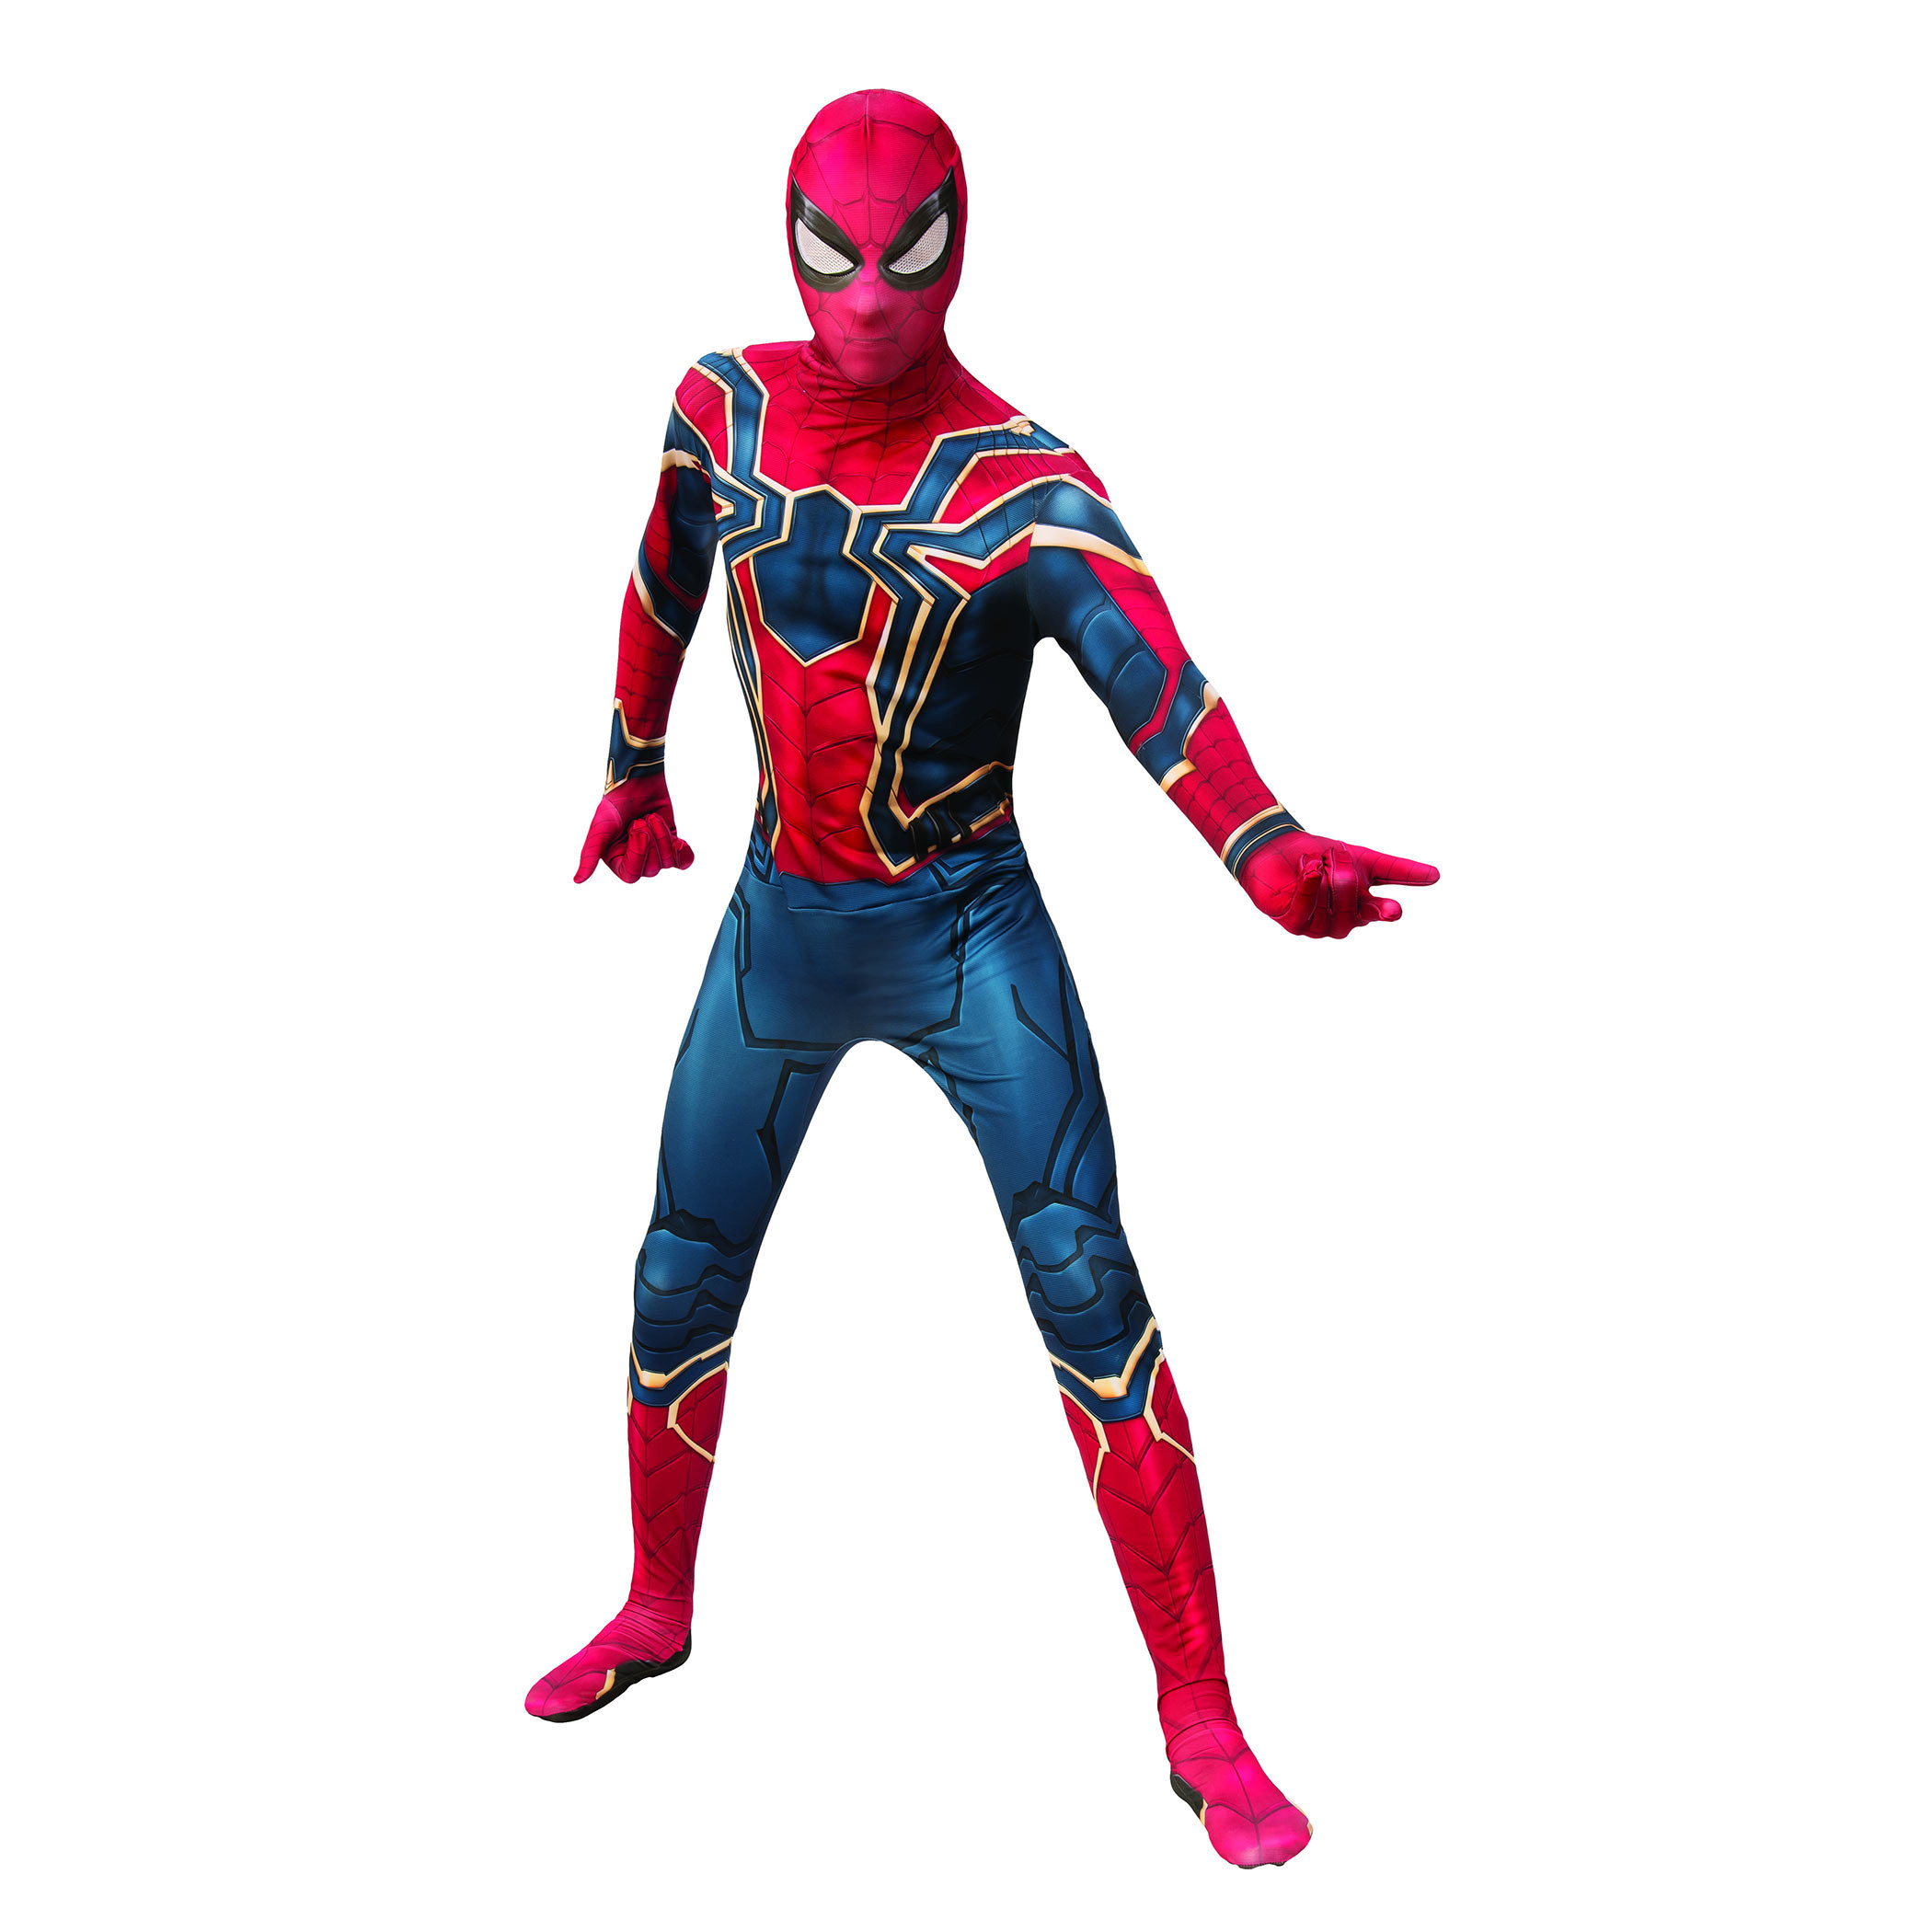 Avengers: Endgame Iron Spider 2nd Skin Suit Costume